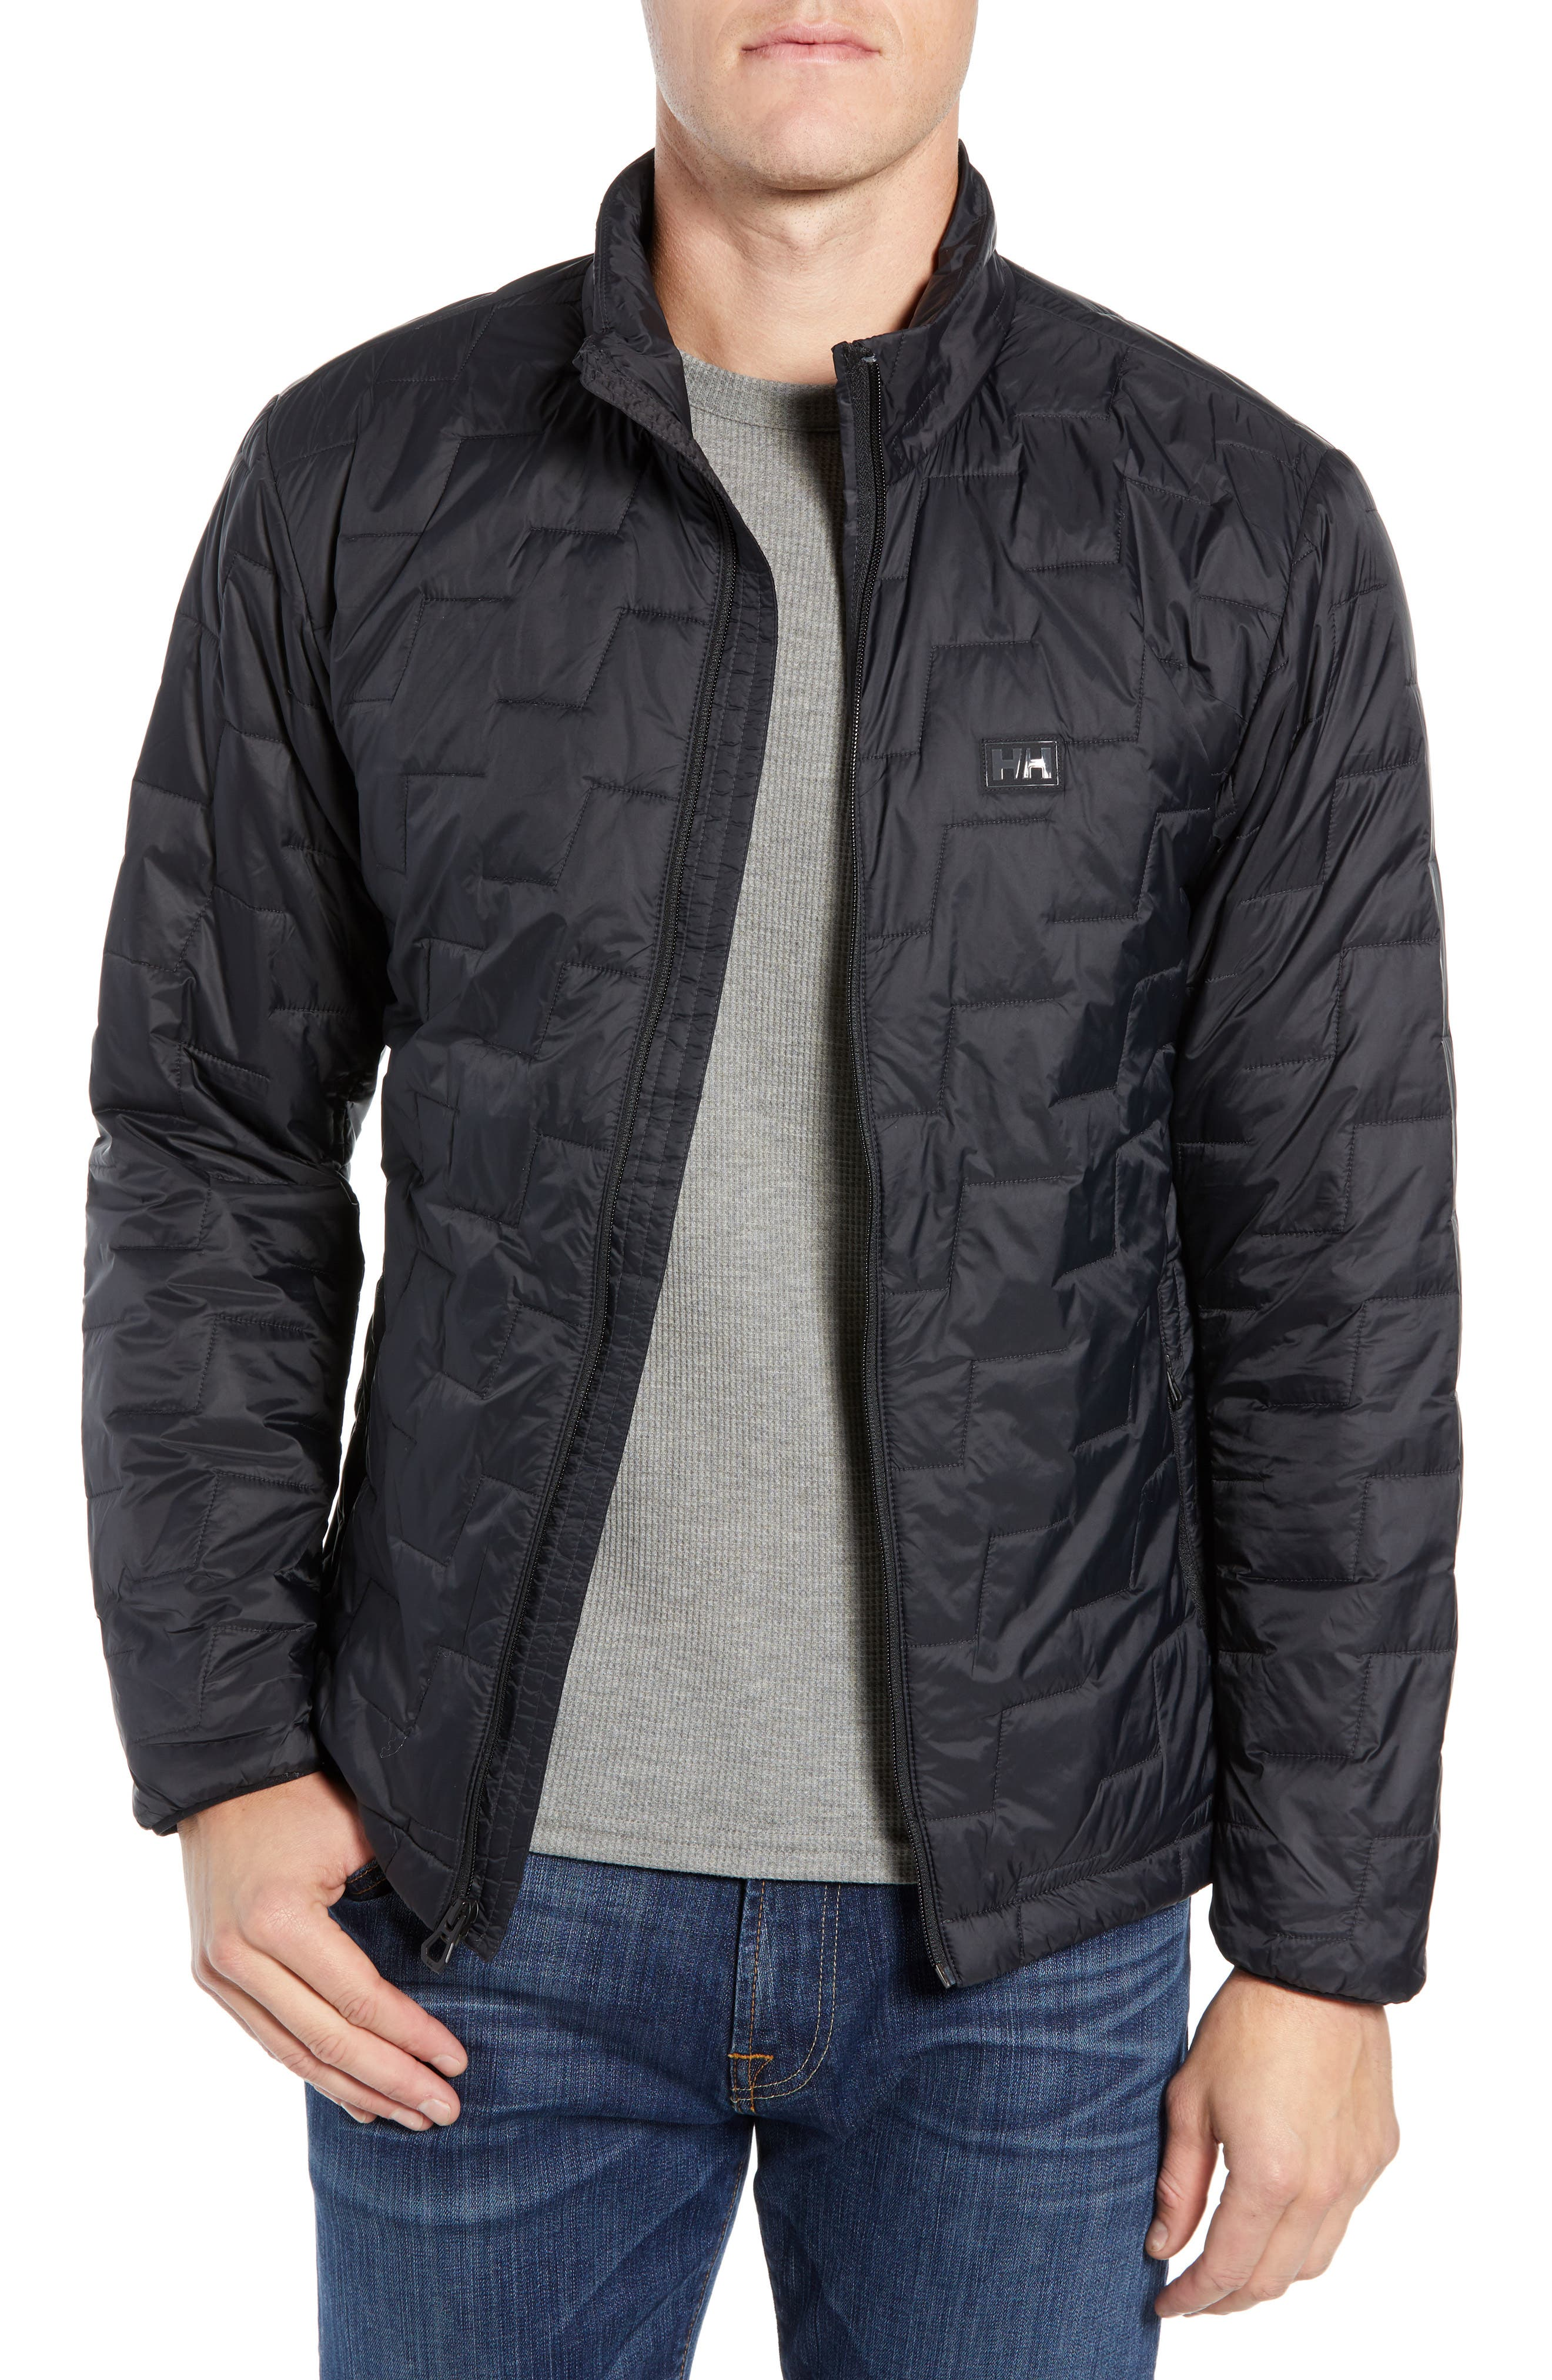 Lifaloft Insulator Jacket,                         Main,                         color, BLACK MATTE